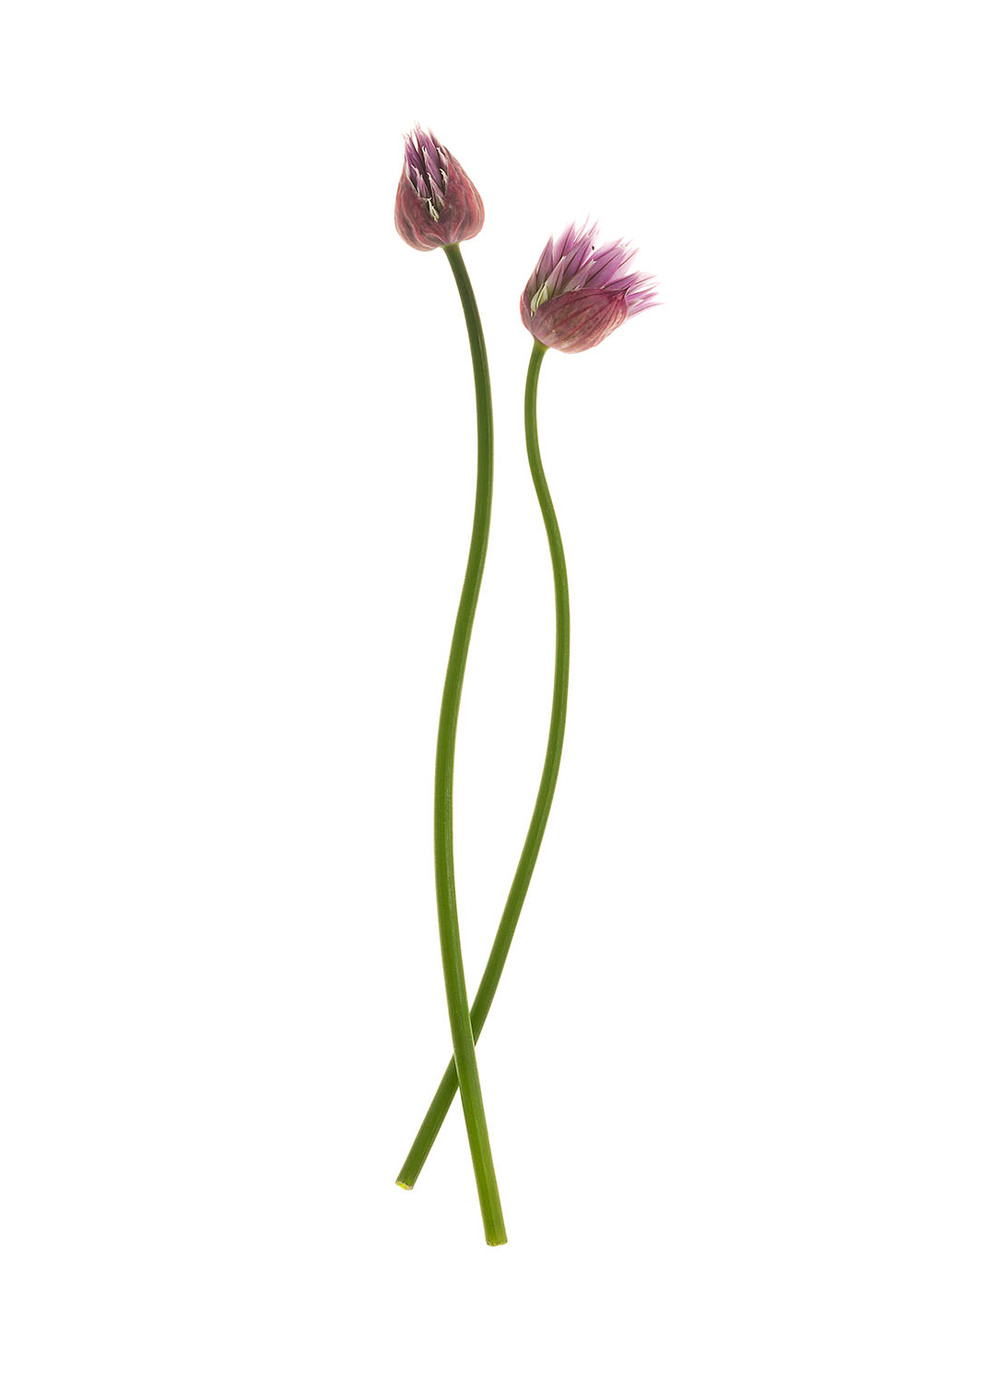 Two Chive Flowers